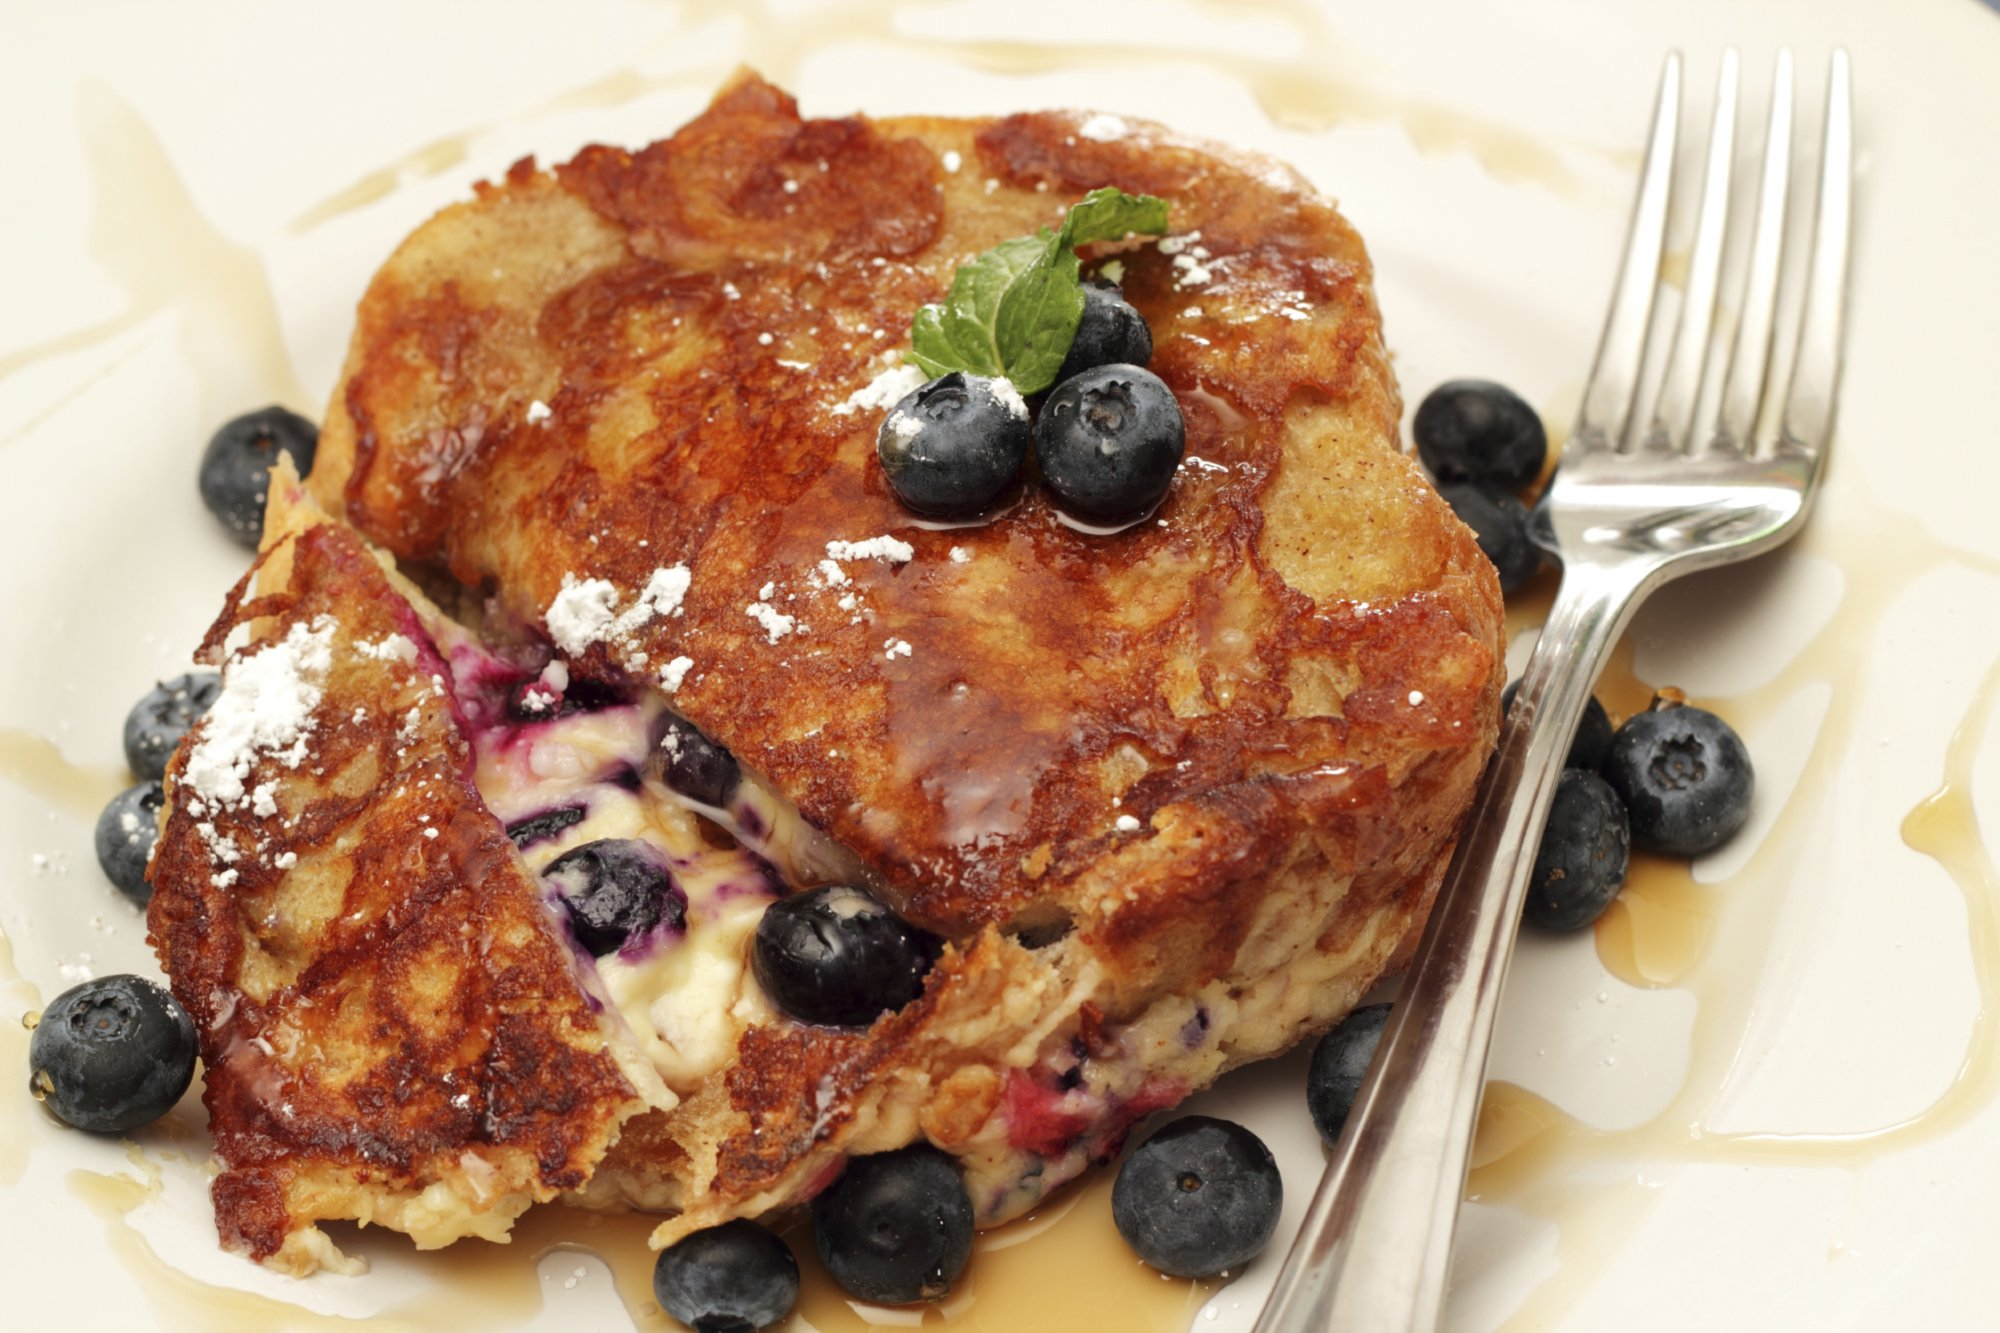 mascarpone_stuffed_fr_toast_with_blueberries